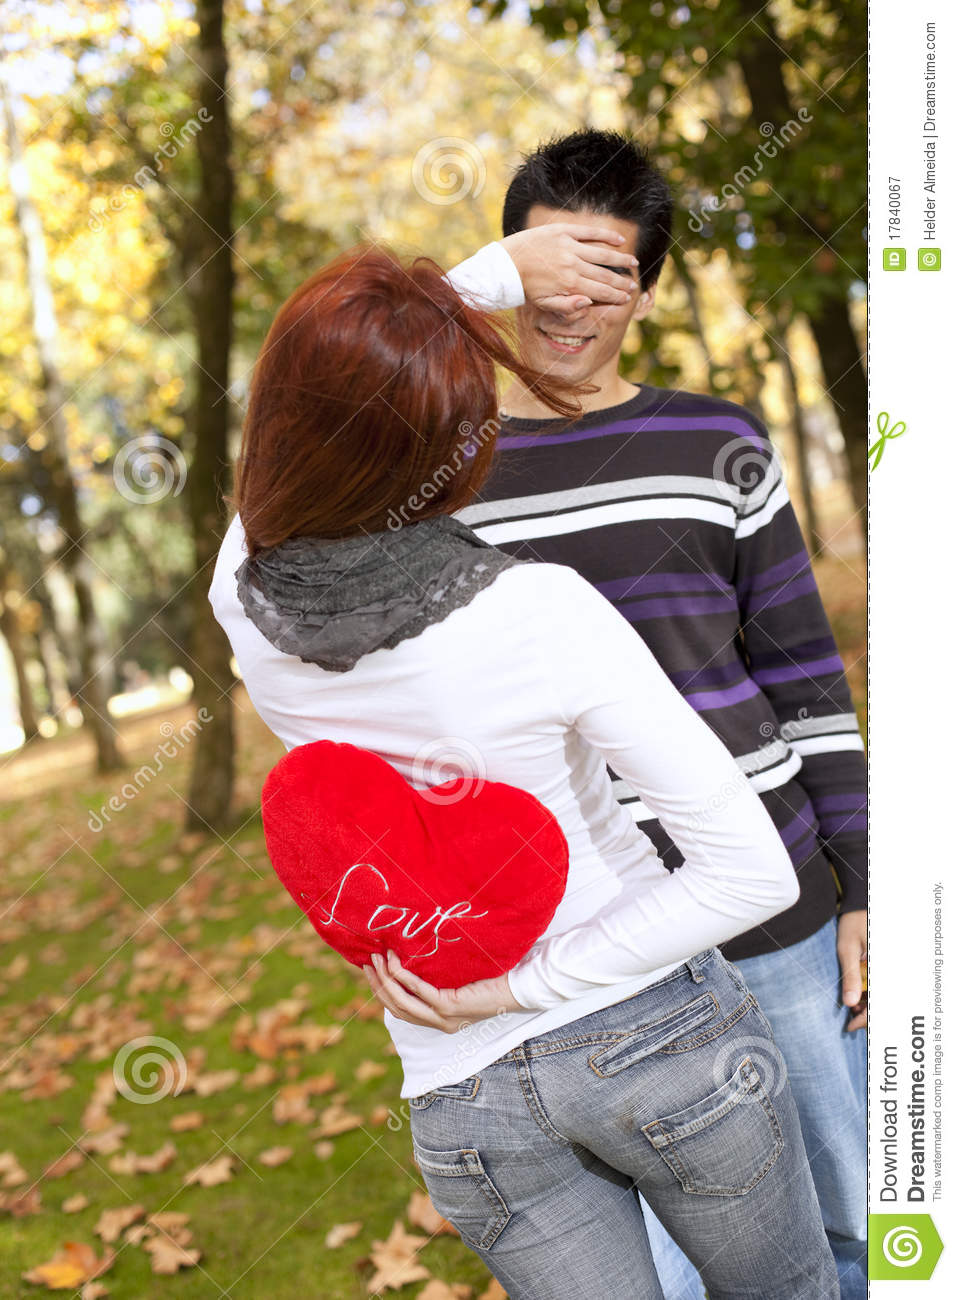 Focus Wallpaper Iphone X Young Couple Celebrating Valentine Day Stock Image Image